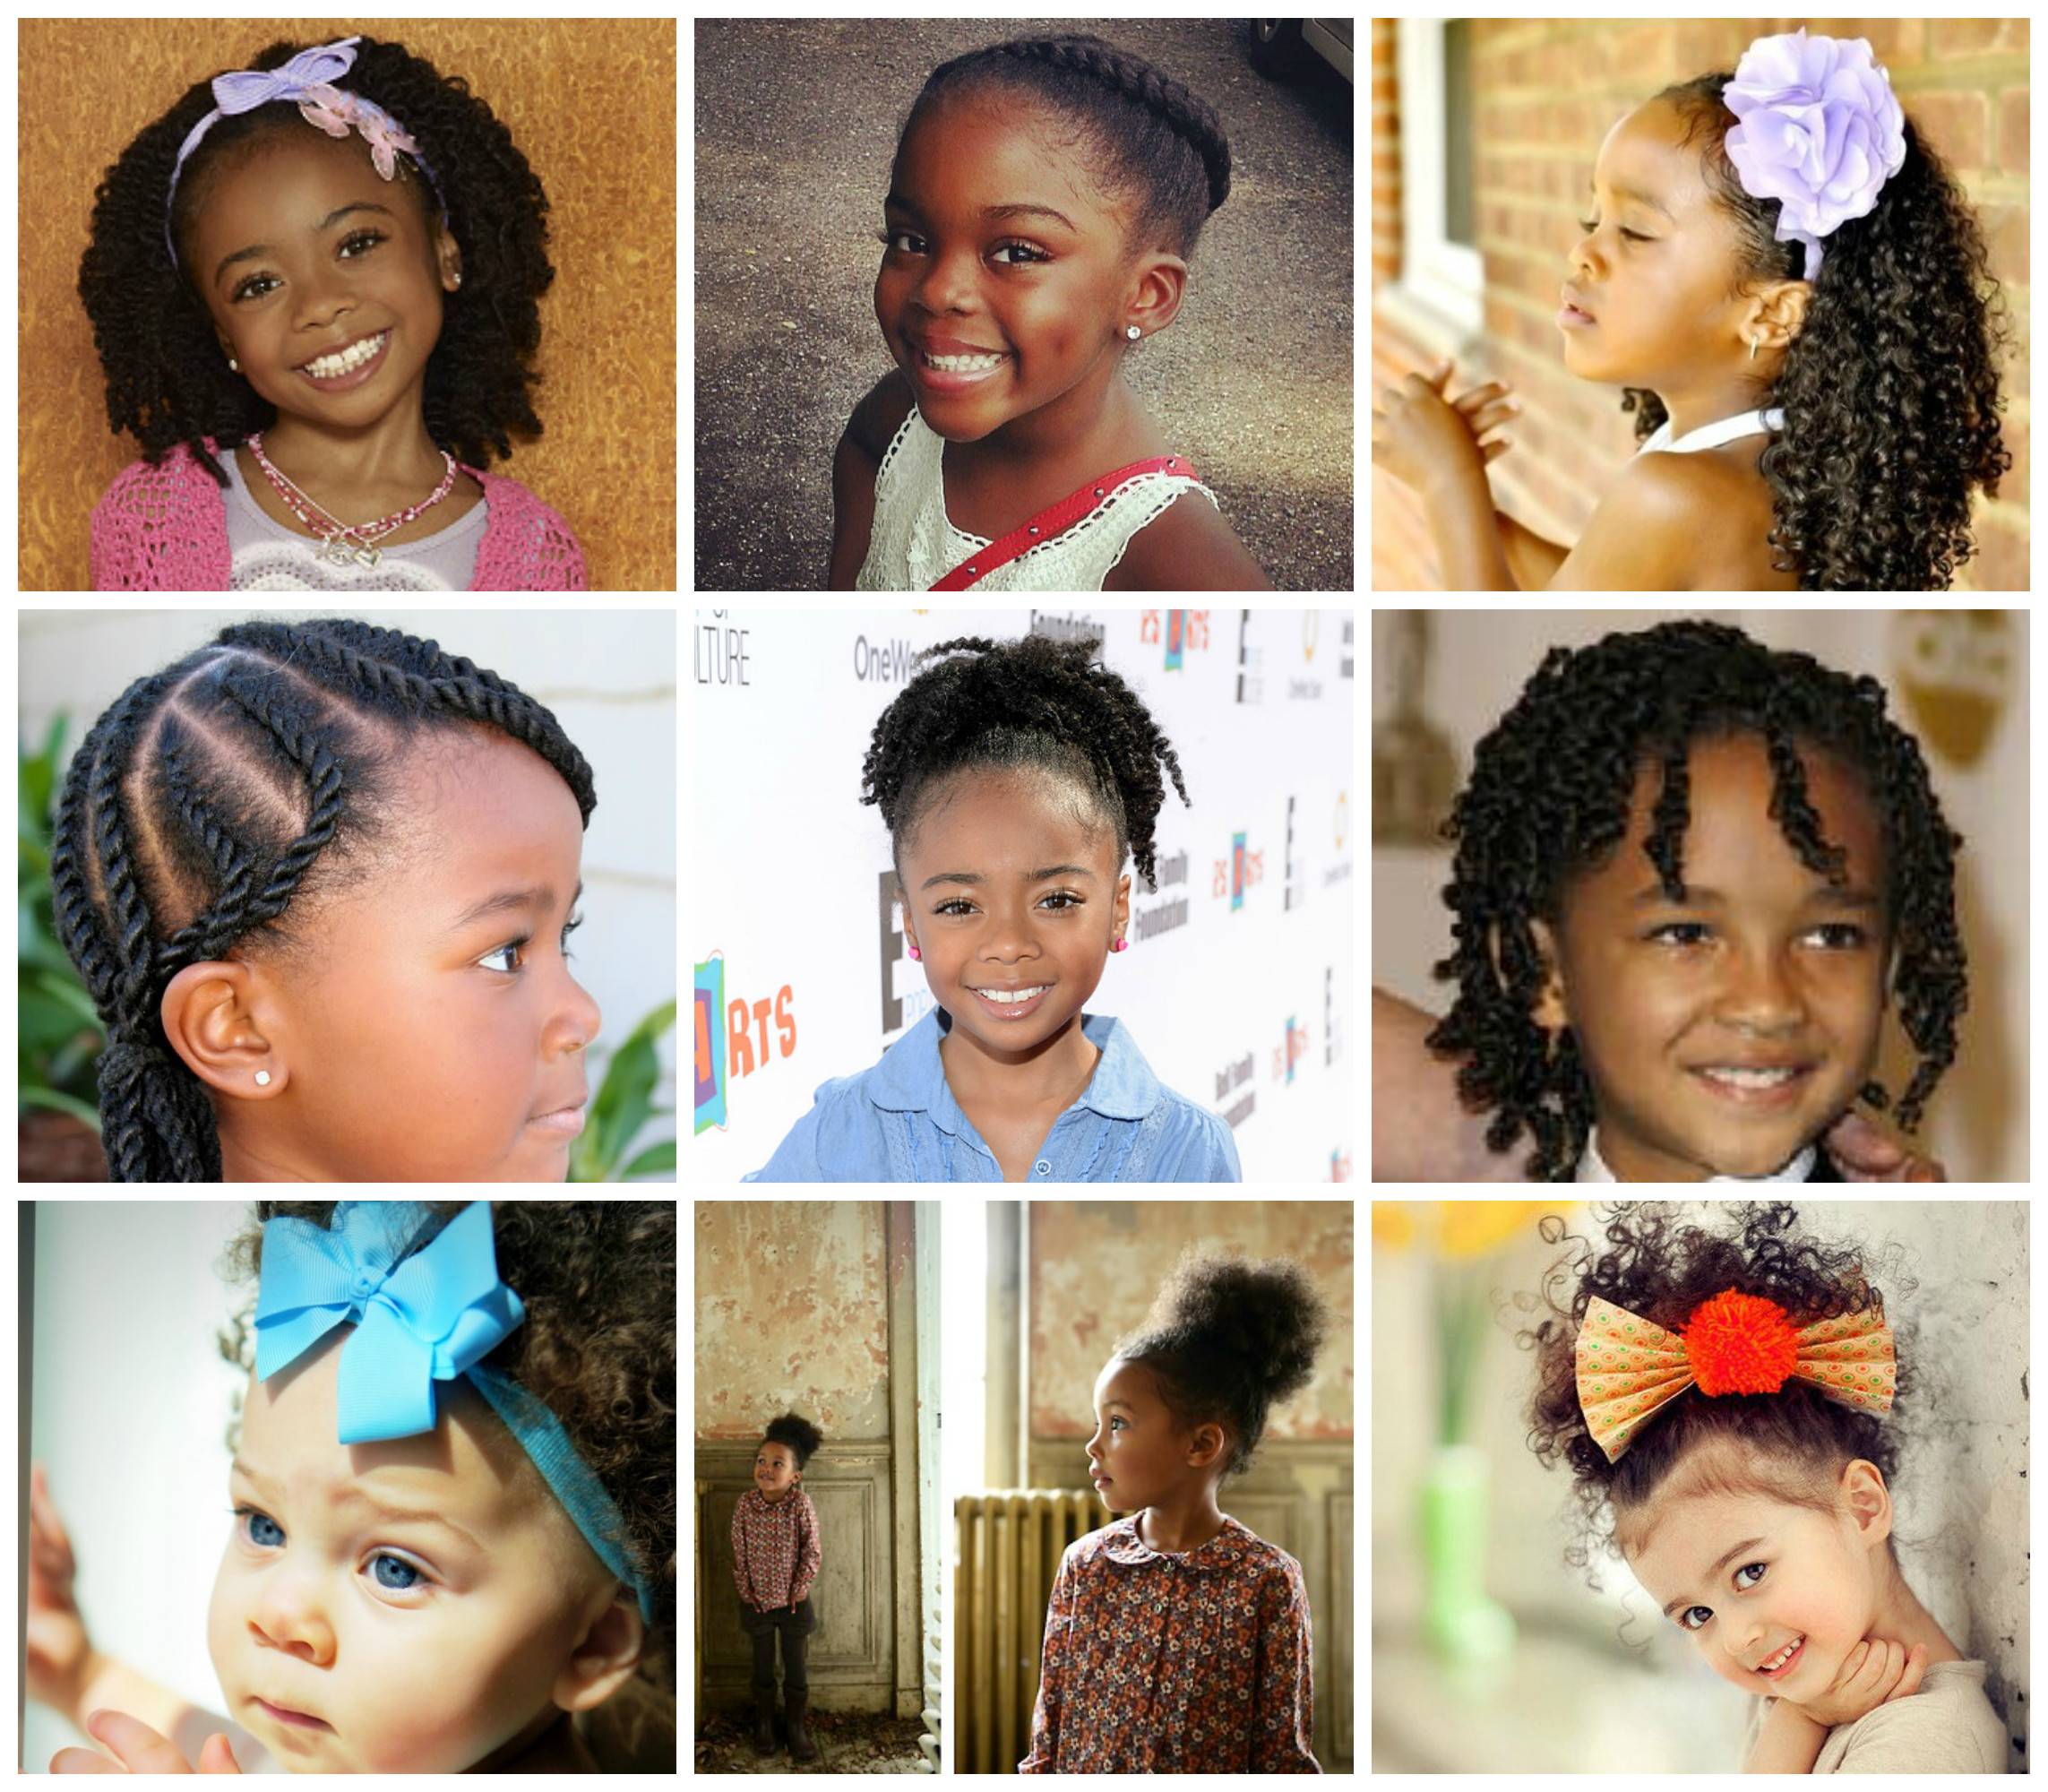 Best ideas about Kids Hairstyles For School . Save or Pin Back To School Hairstyle Ideas For Kids and Teens Now.